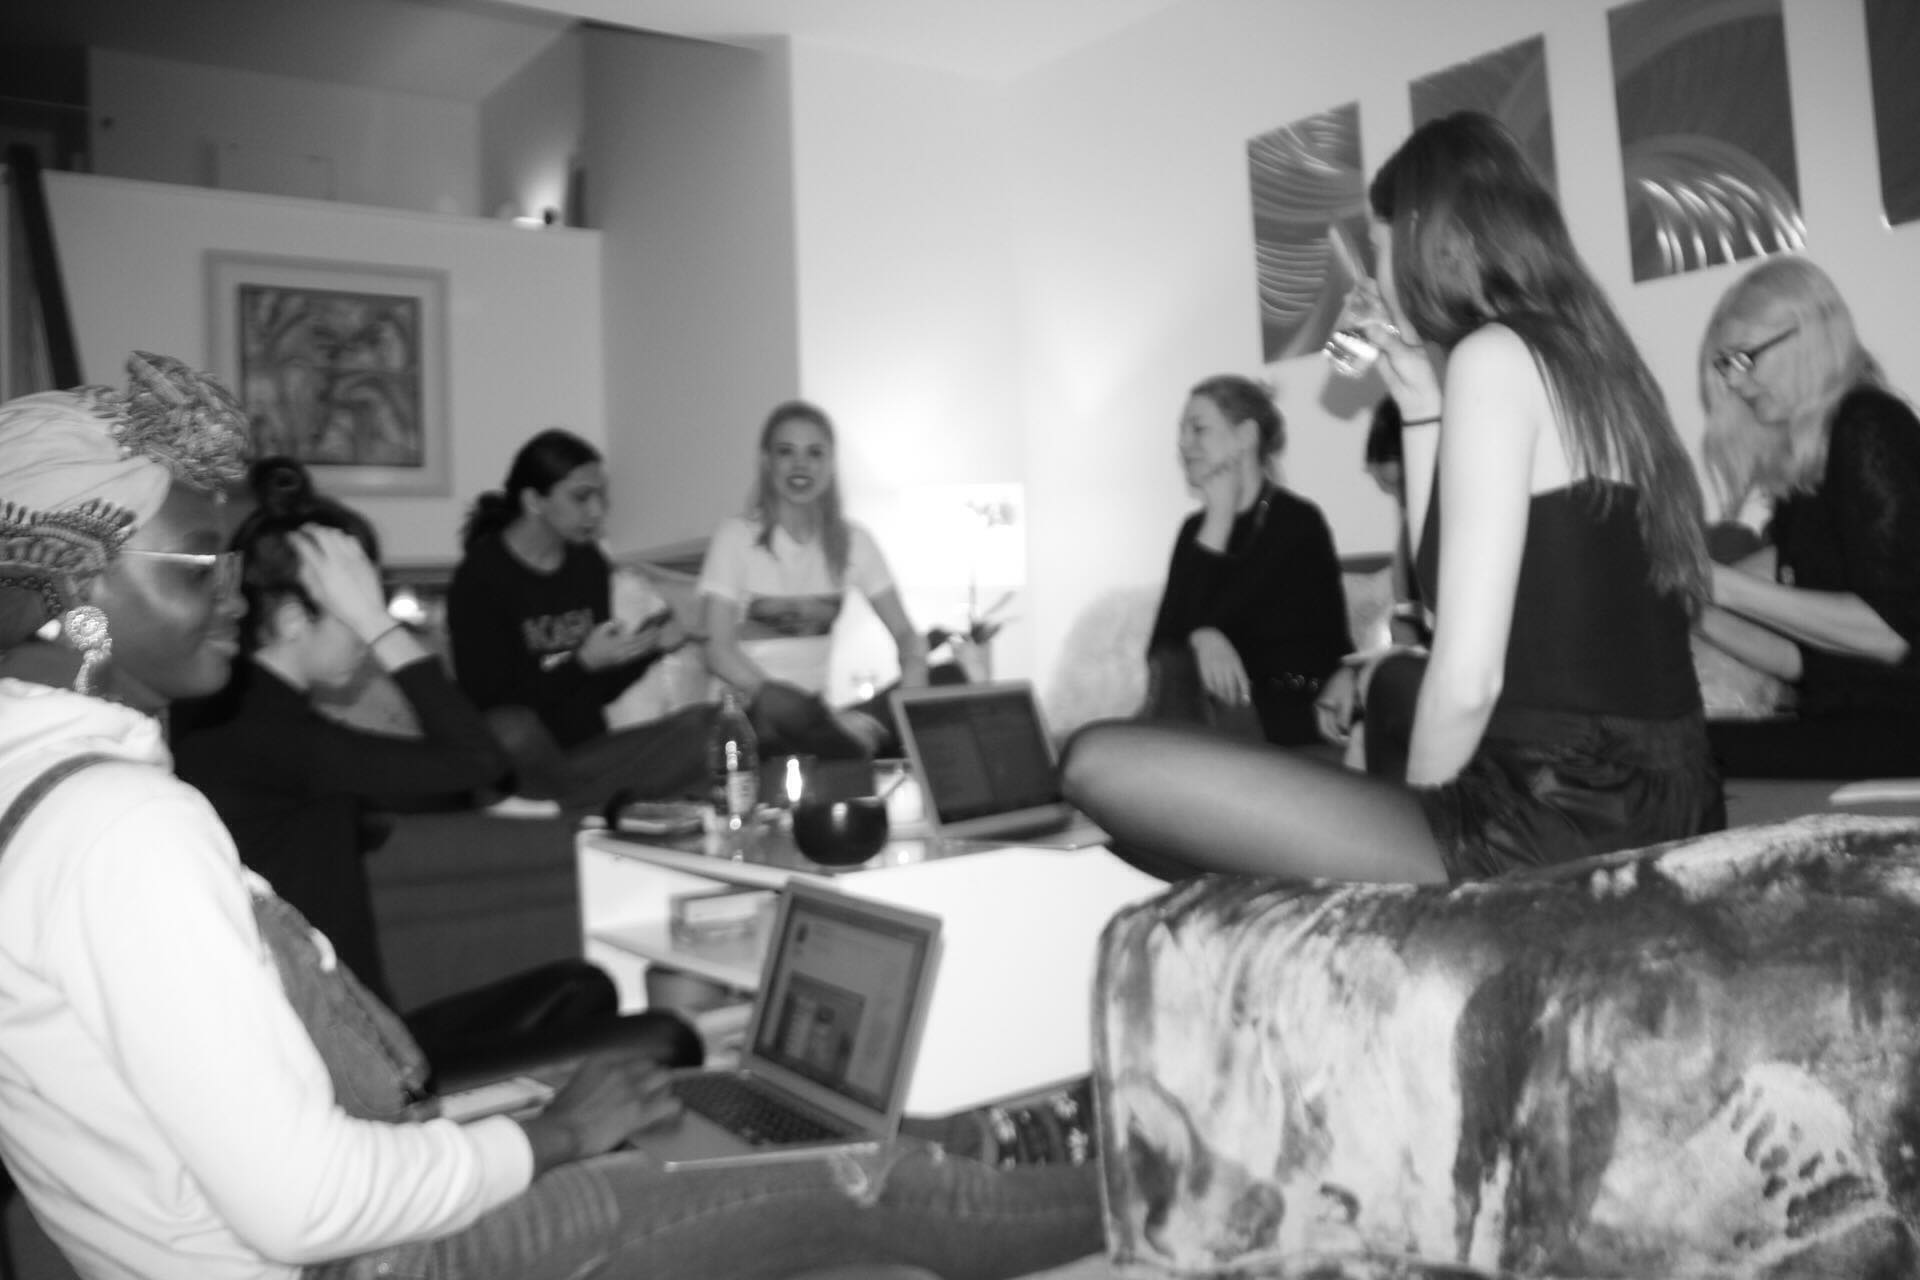 SupeRoleModels - SRM team meeting to discuss future projects, organizing groups and sharing personal goals 02/04/2018